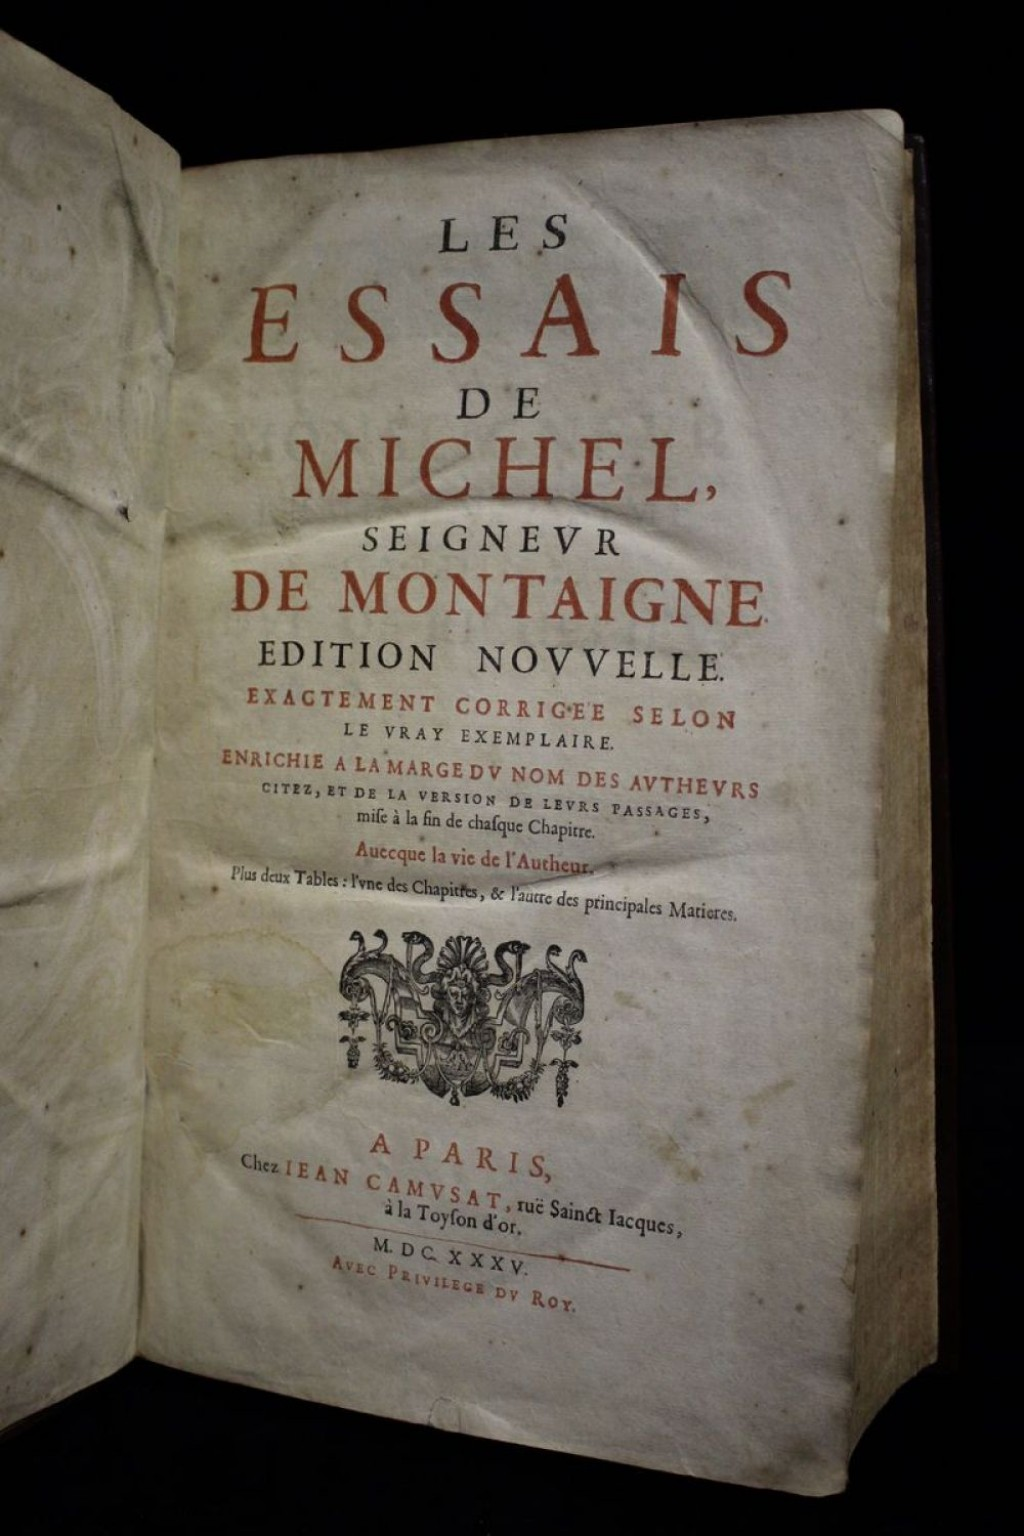 025 Essay Example H Montaigne Michel Les Essais Jpg Frightening De Essays On Experience Summary Quotes Large